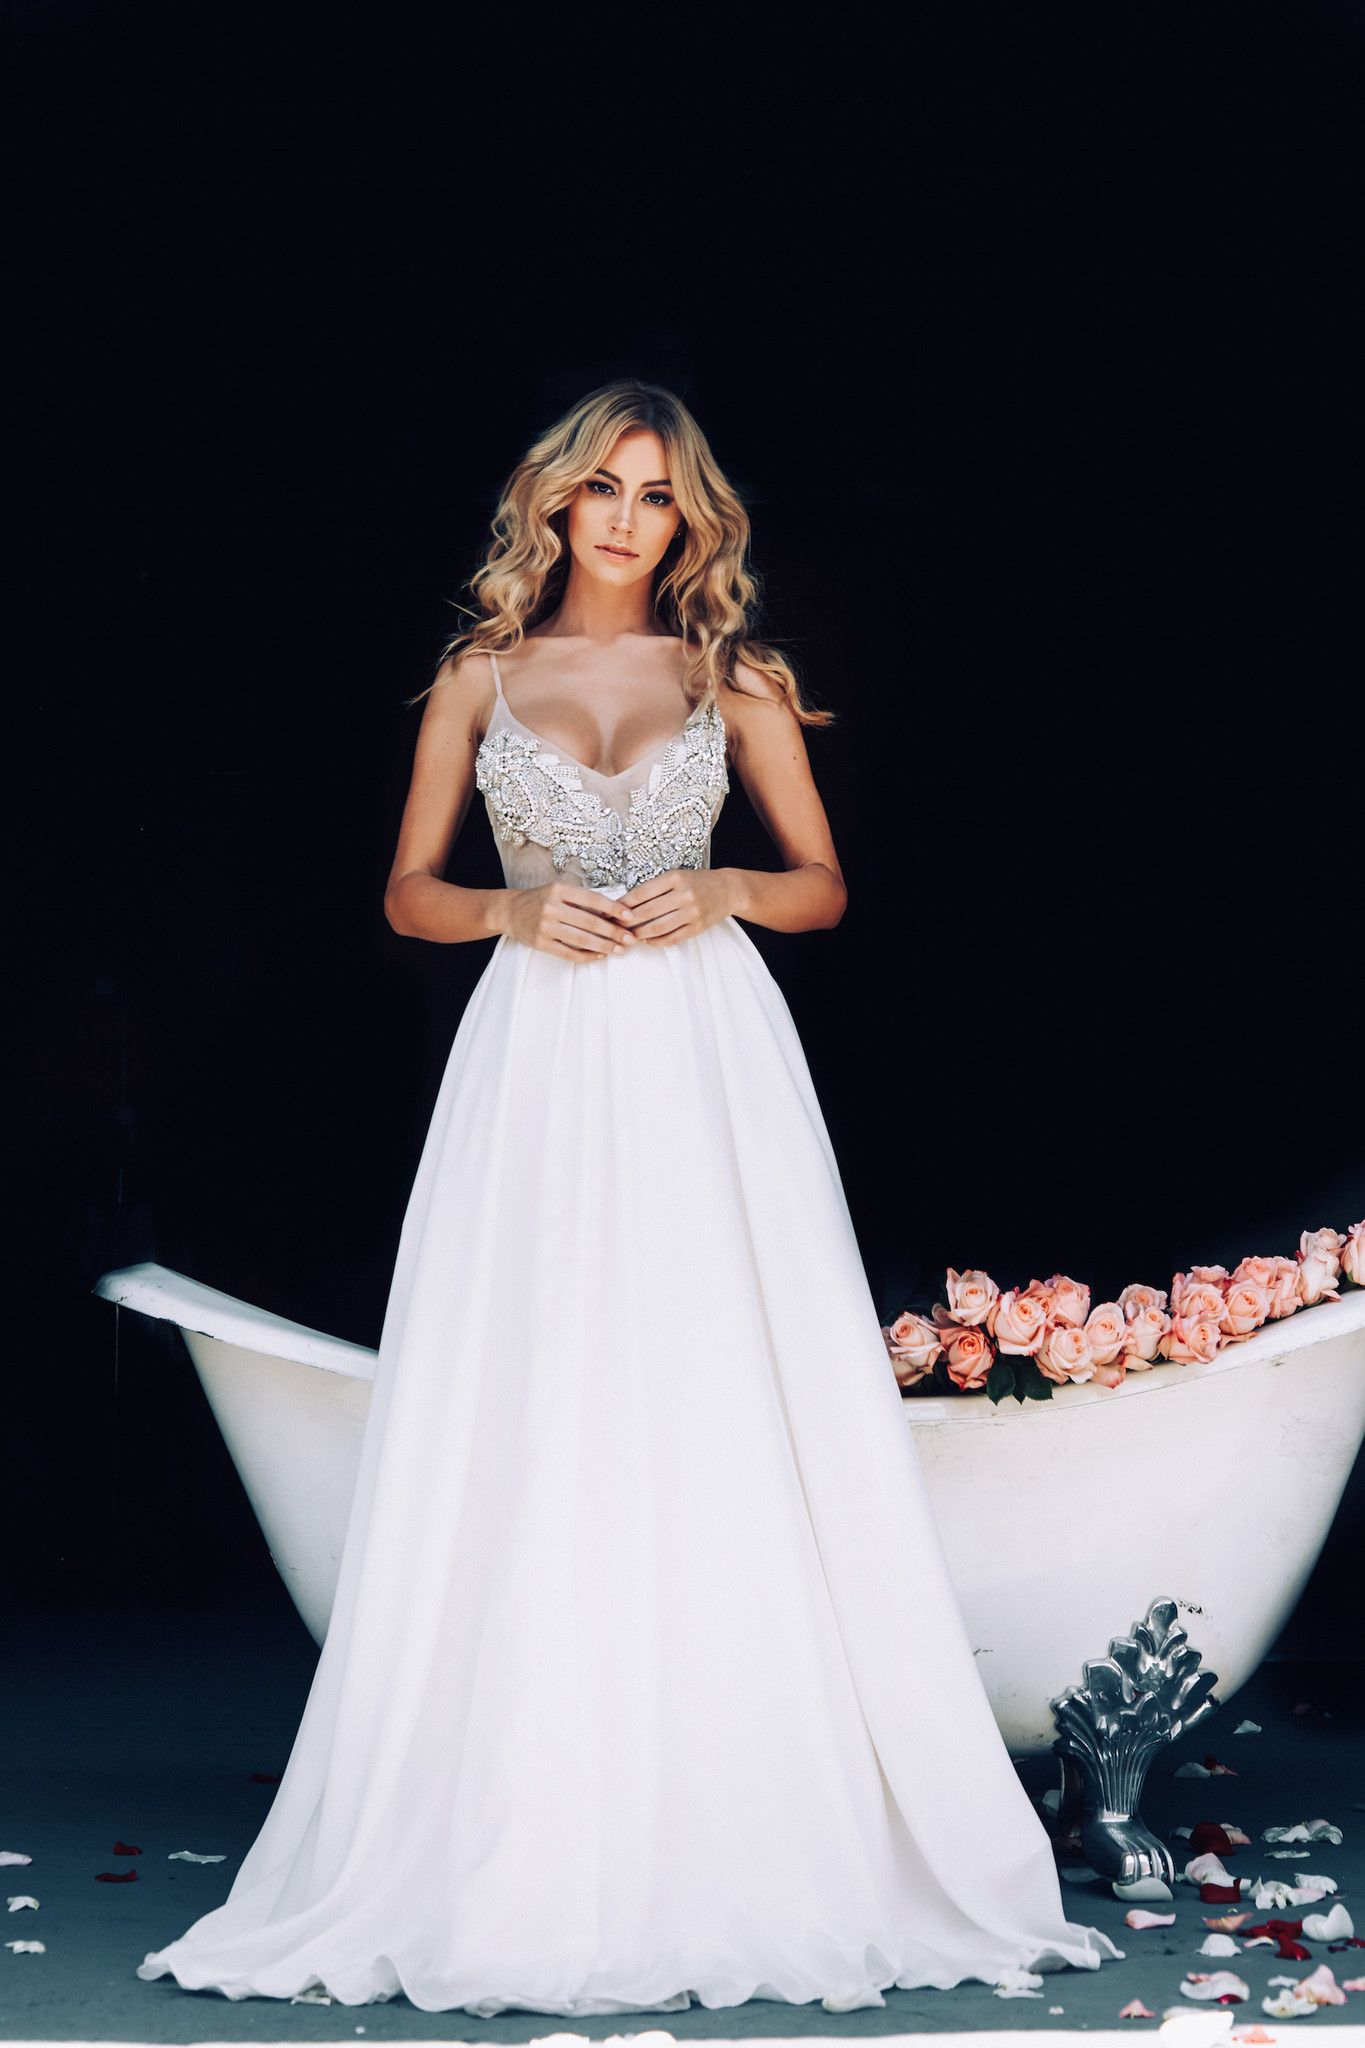 Lurelly Bridal High Fashion Wedding Dresses Inspiration